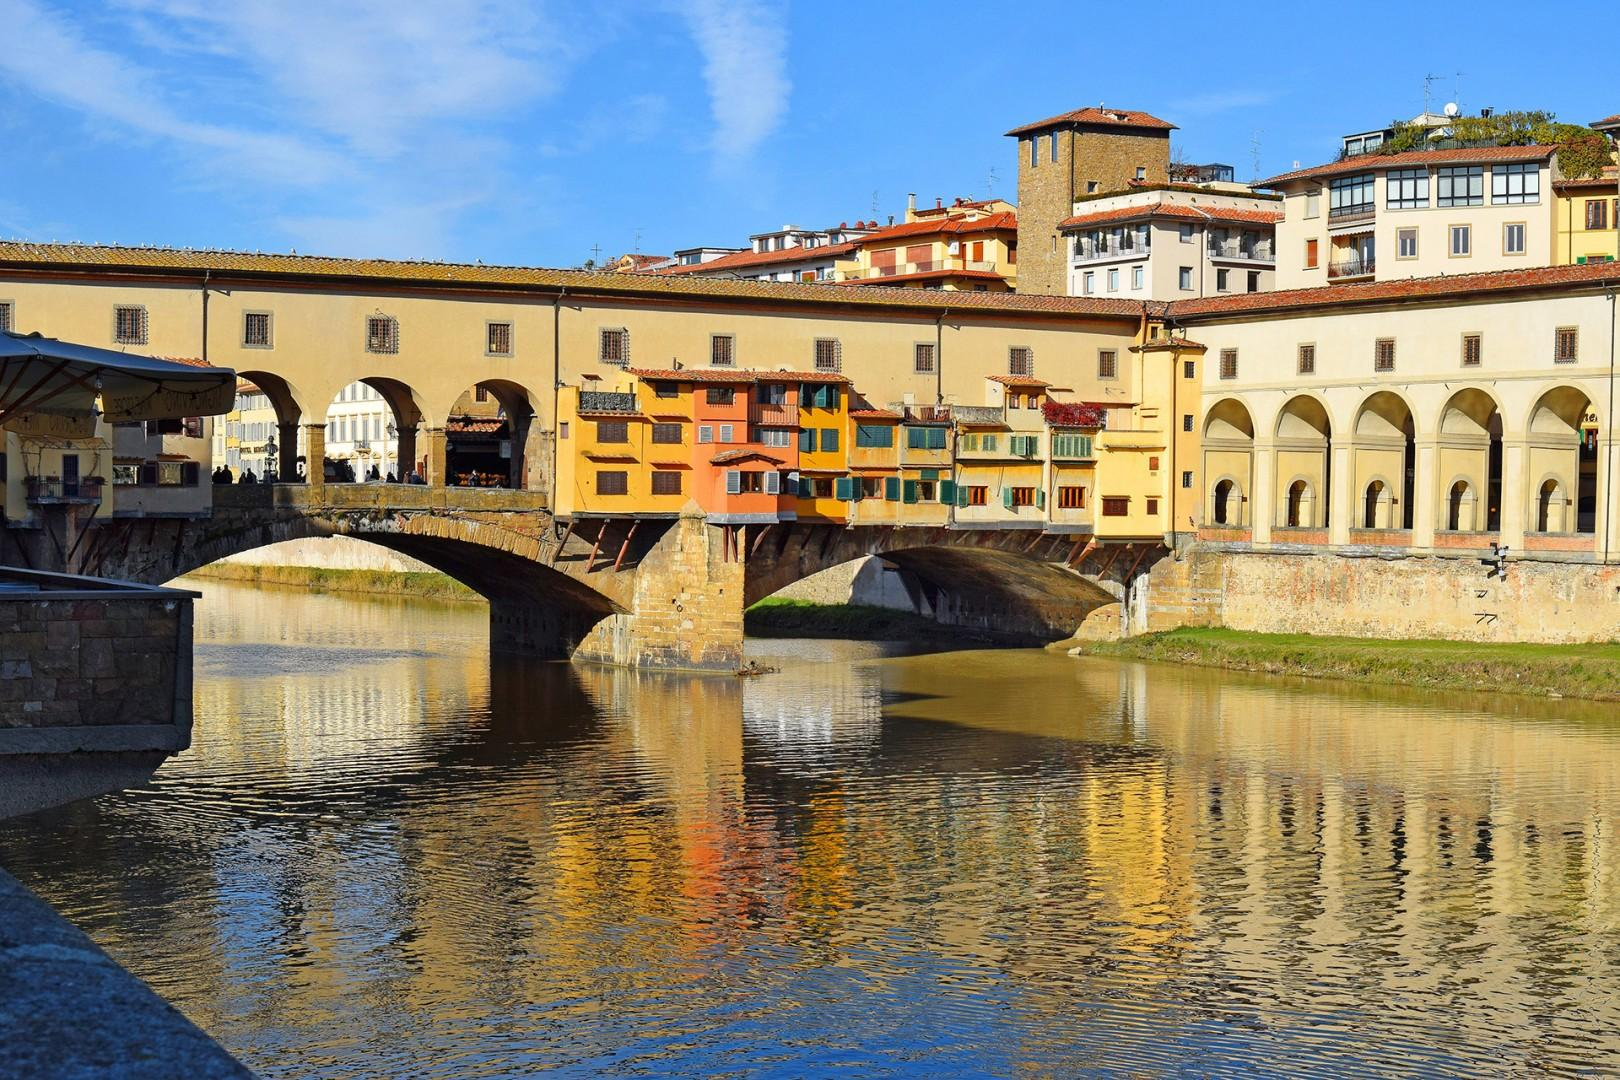 The Ponte Vecchio has graced the Arno river for 700 years. Fine jewelery shops adorn your stroll.